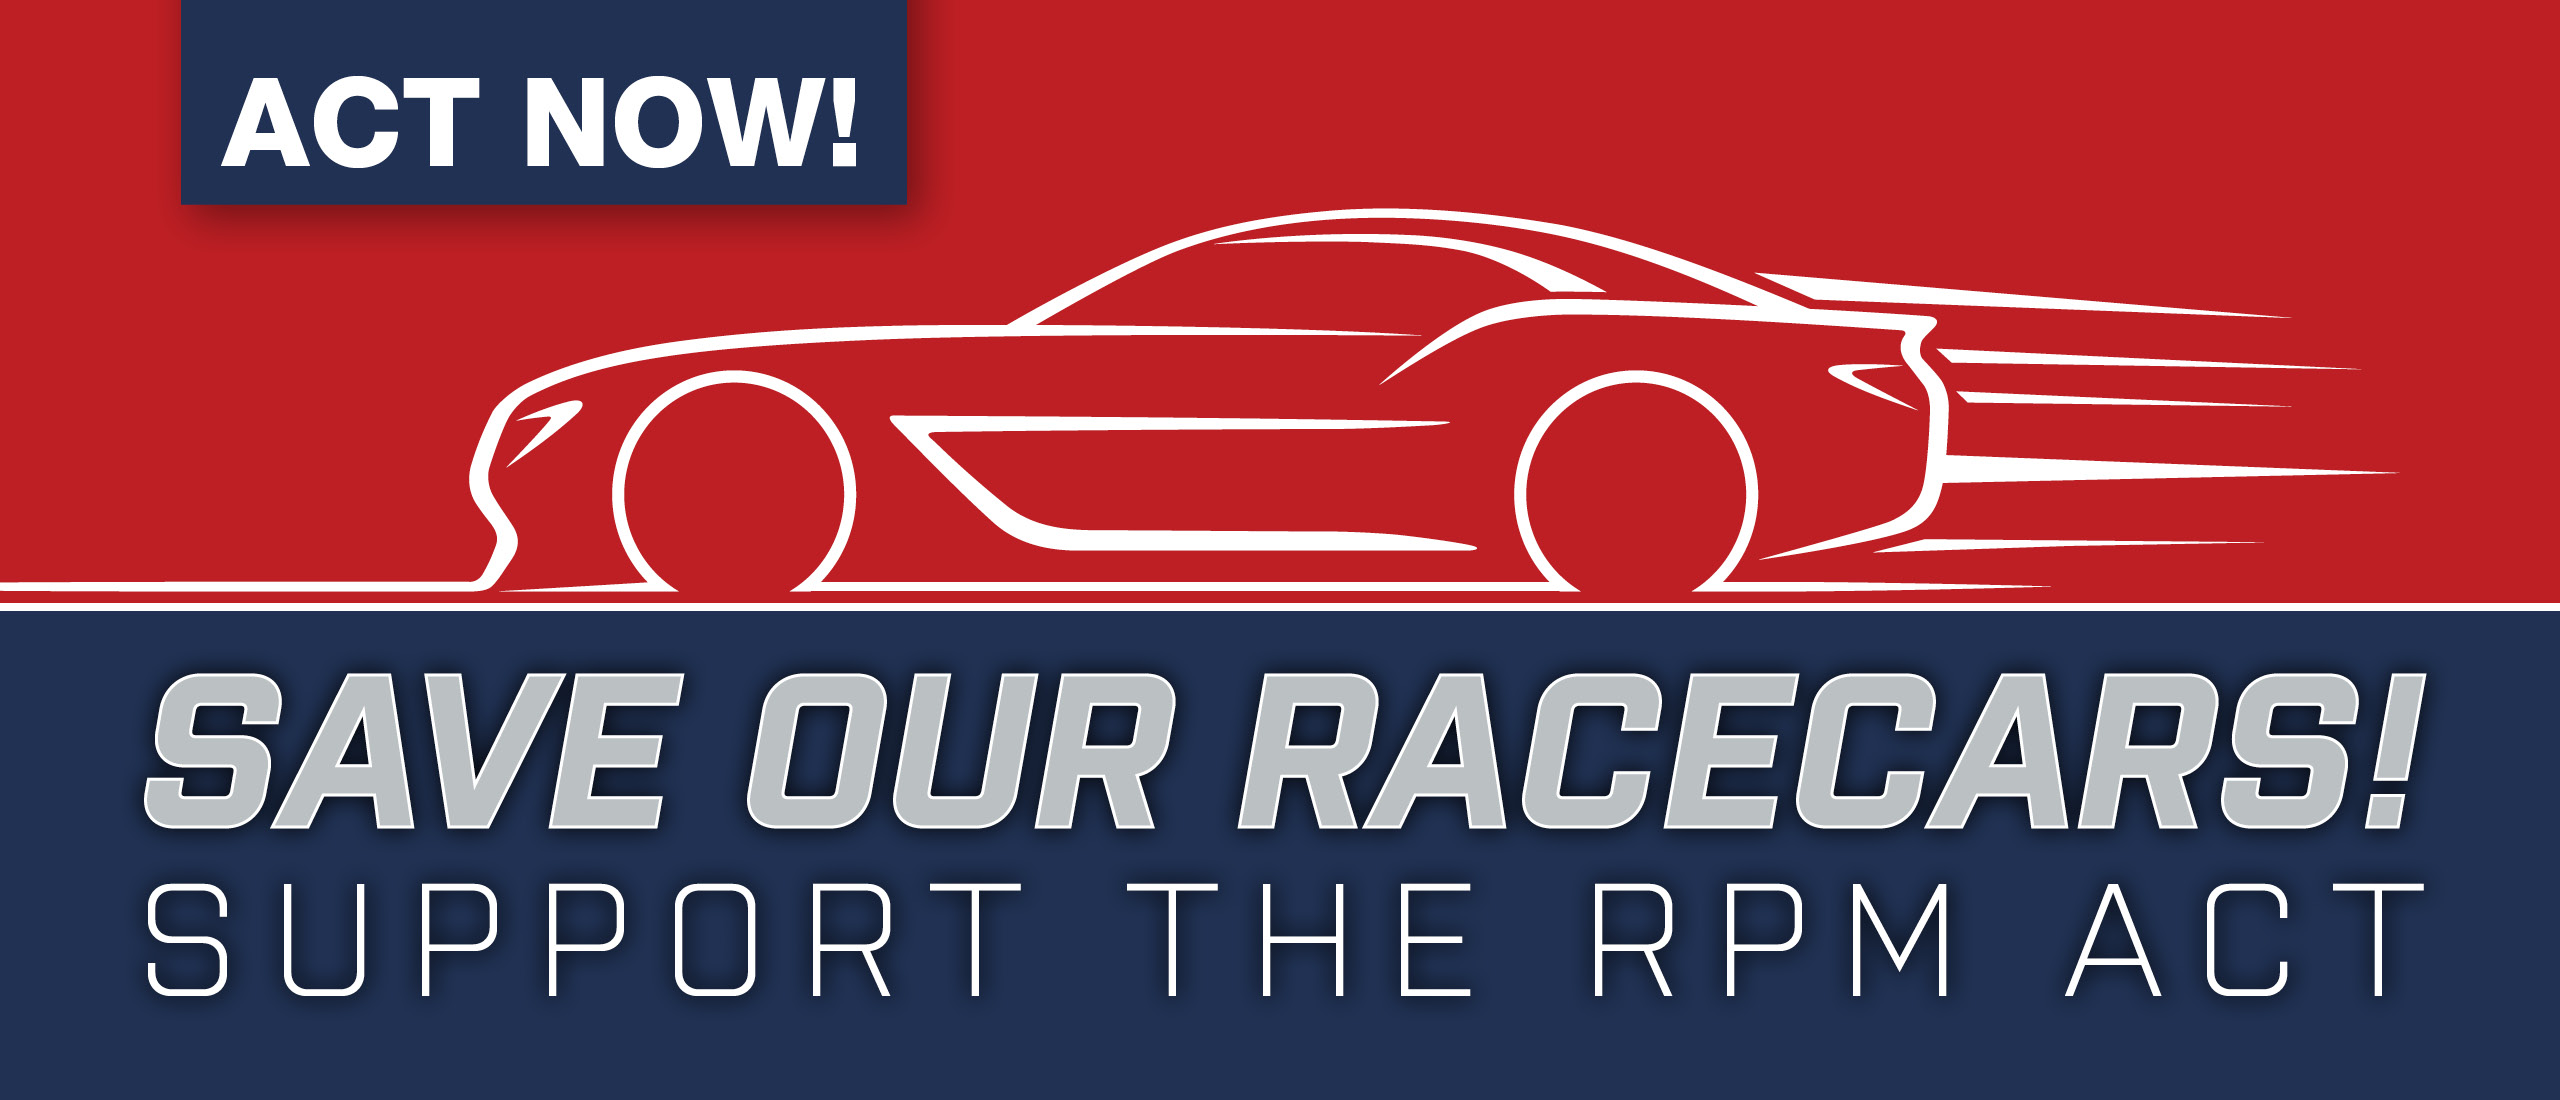 Support the RPM Act - Save our racecars!